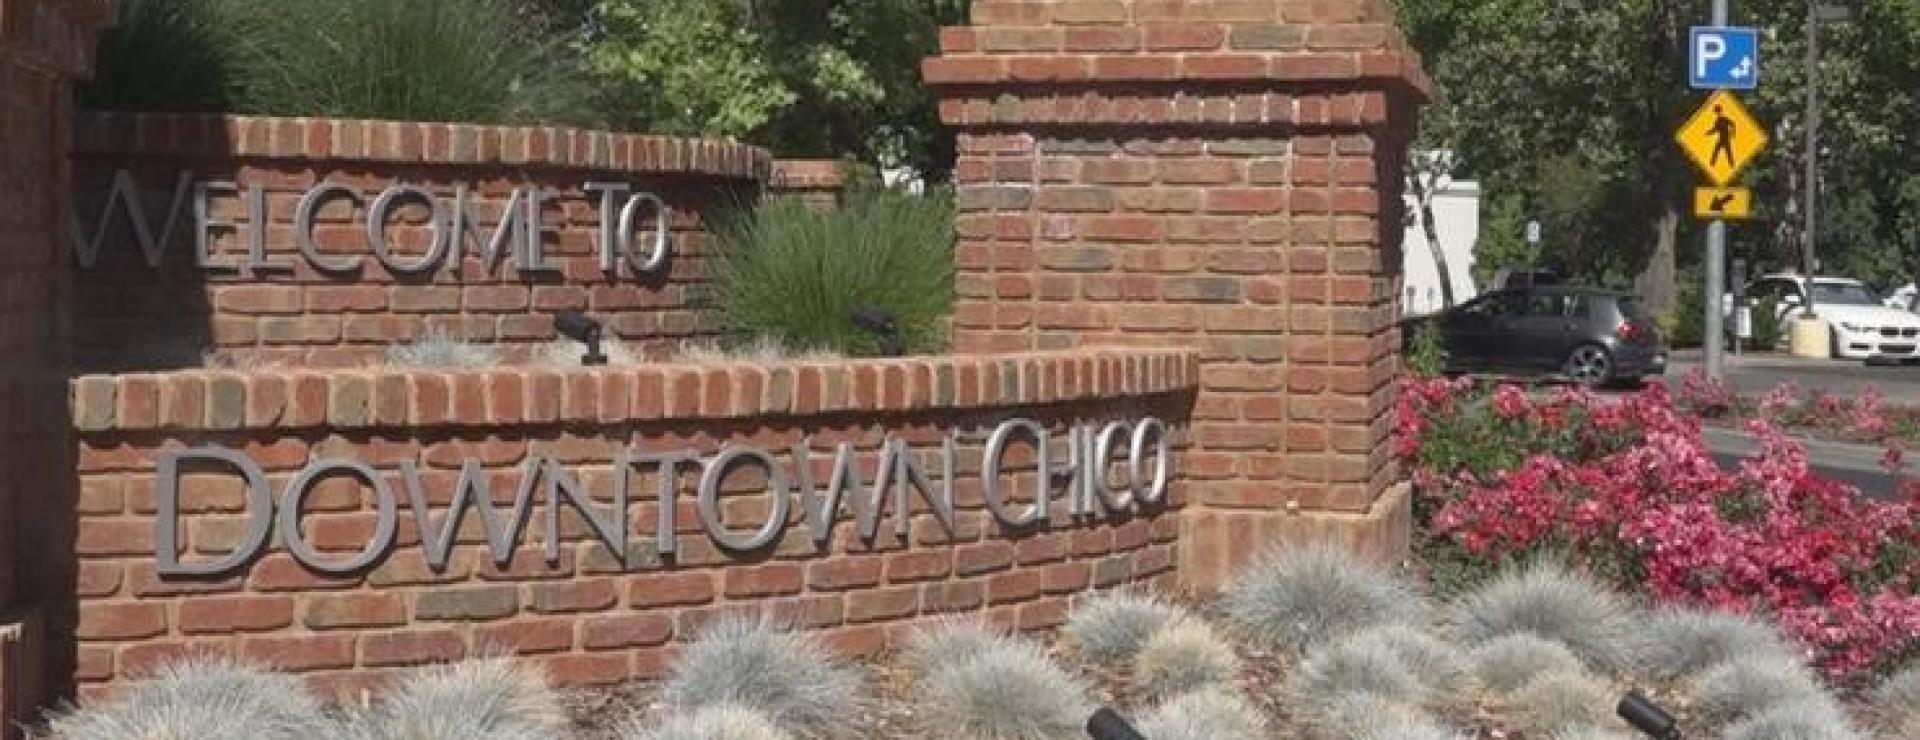 1st and Second street roundabout saying  'welcome to chico'